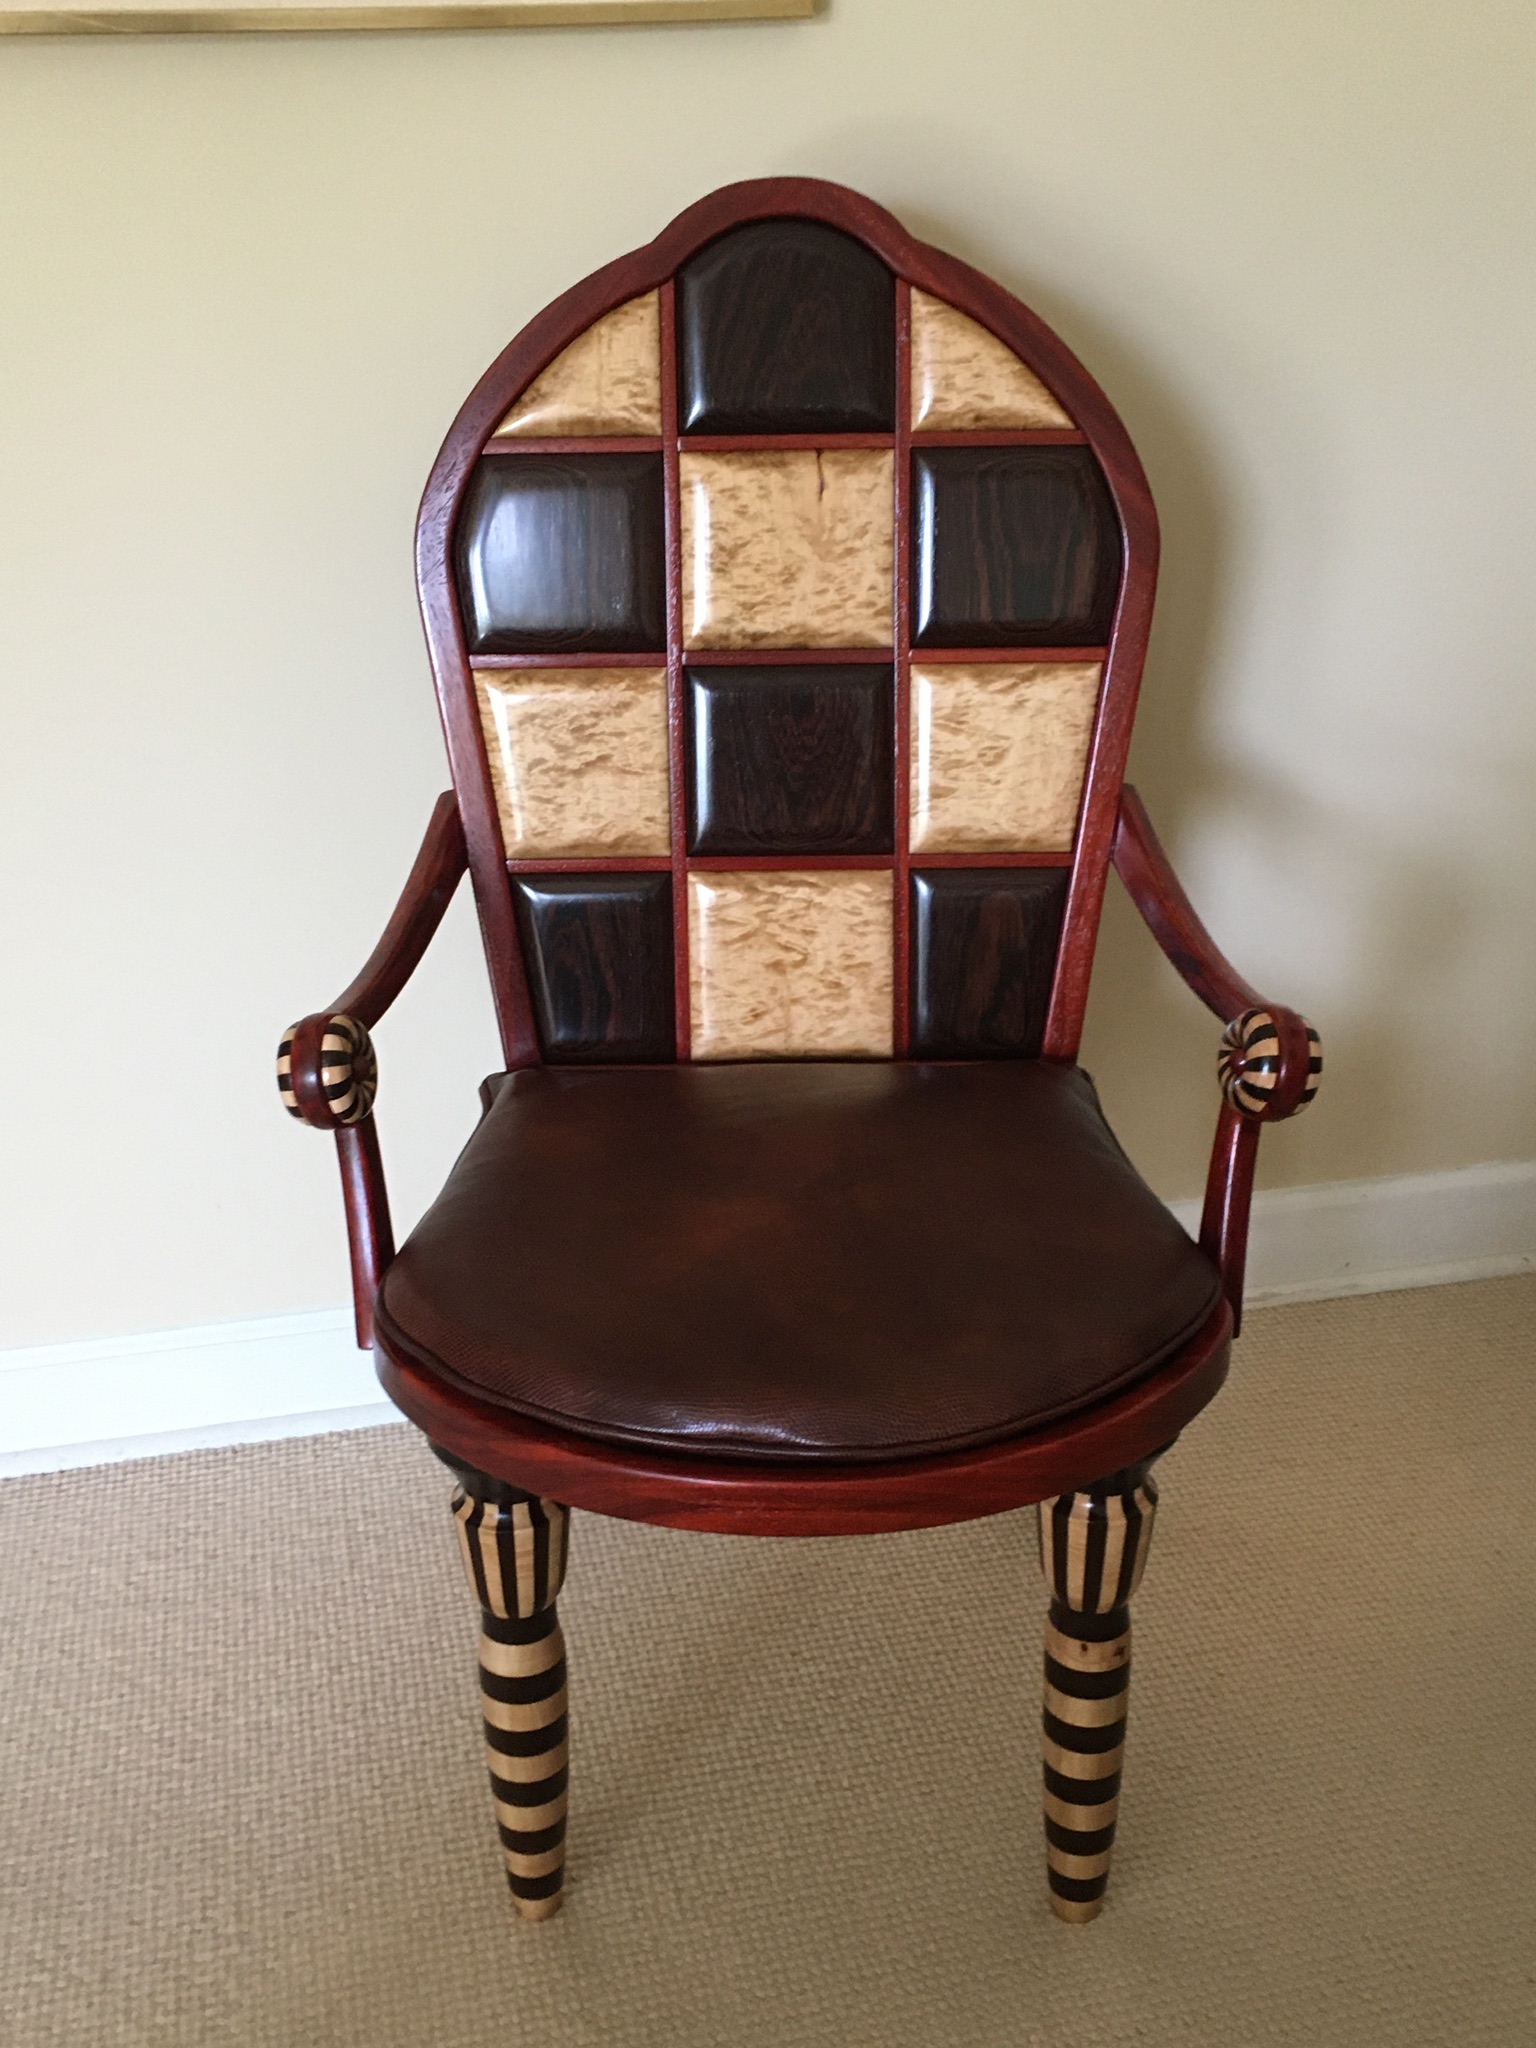 Inlayed and segmented chair